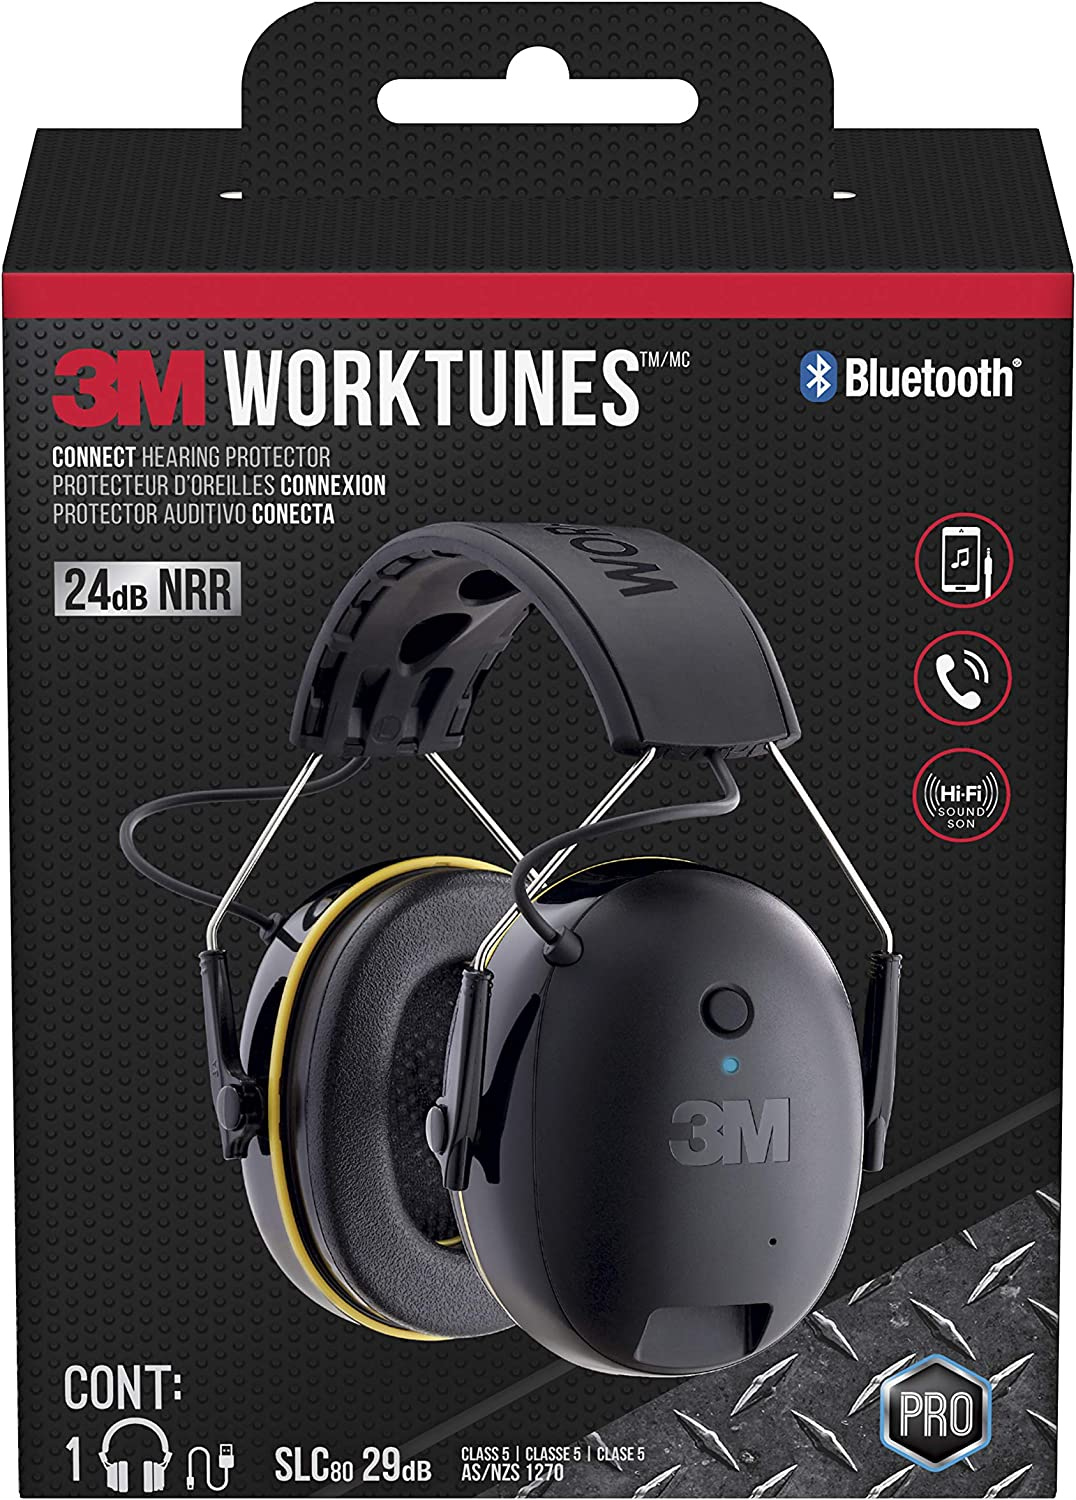 3M WorkTunes Connect Wireless Hearing Protector